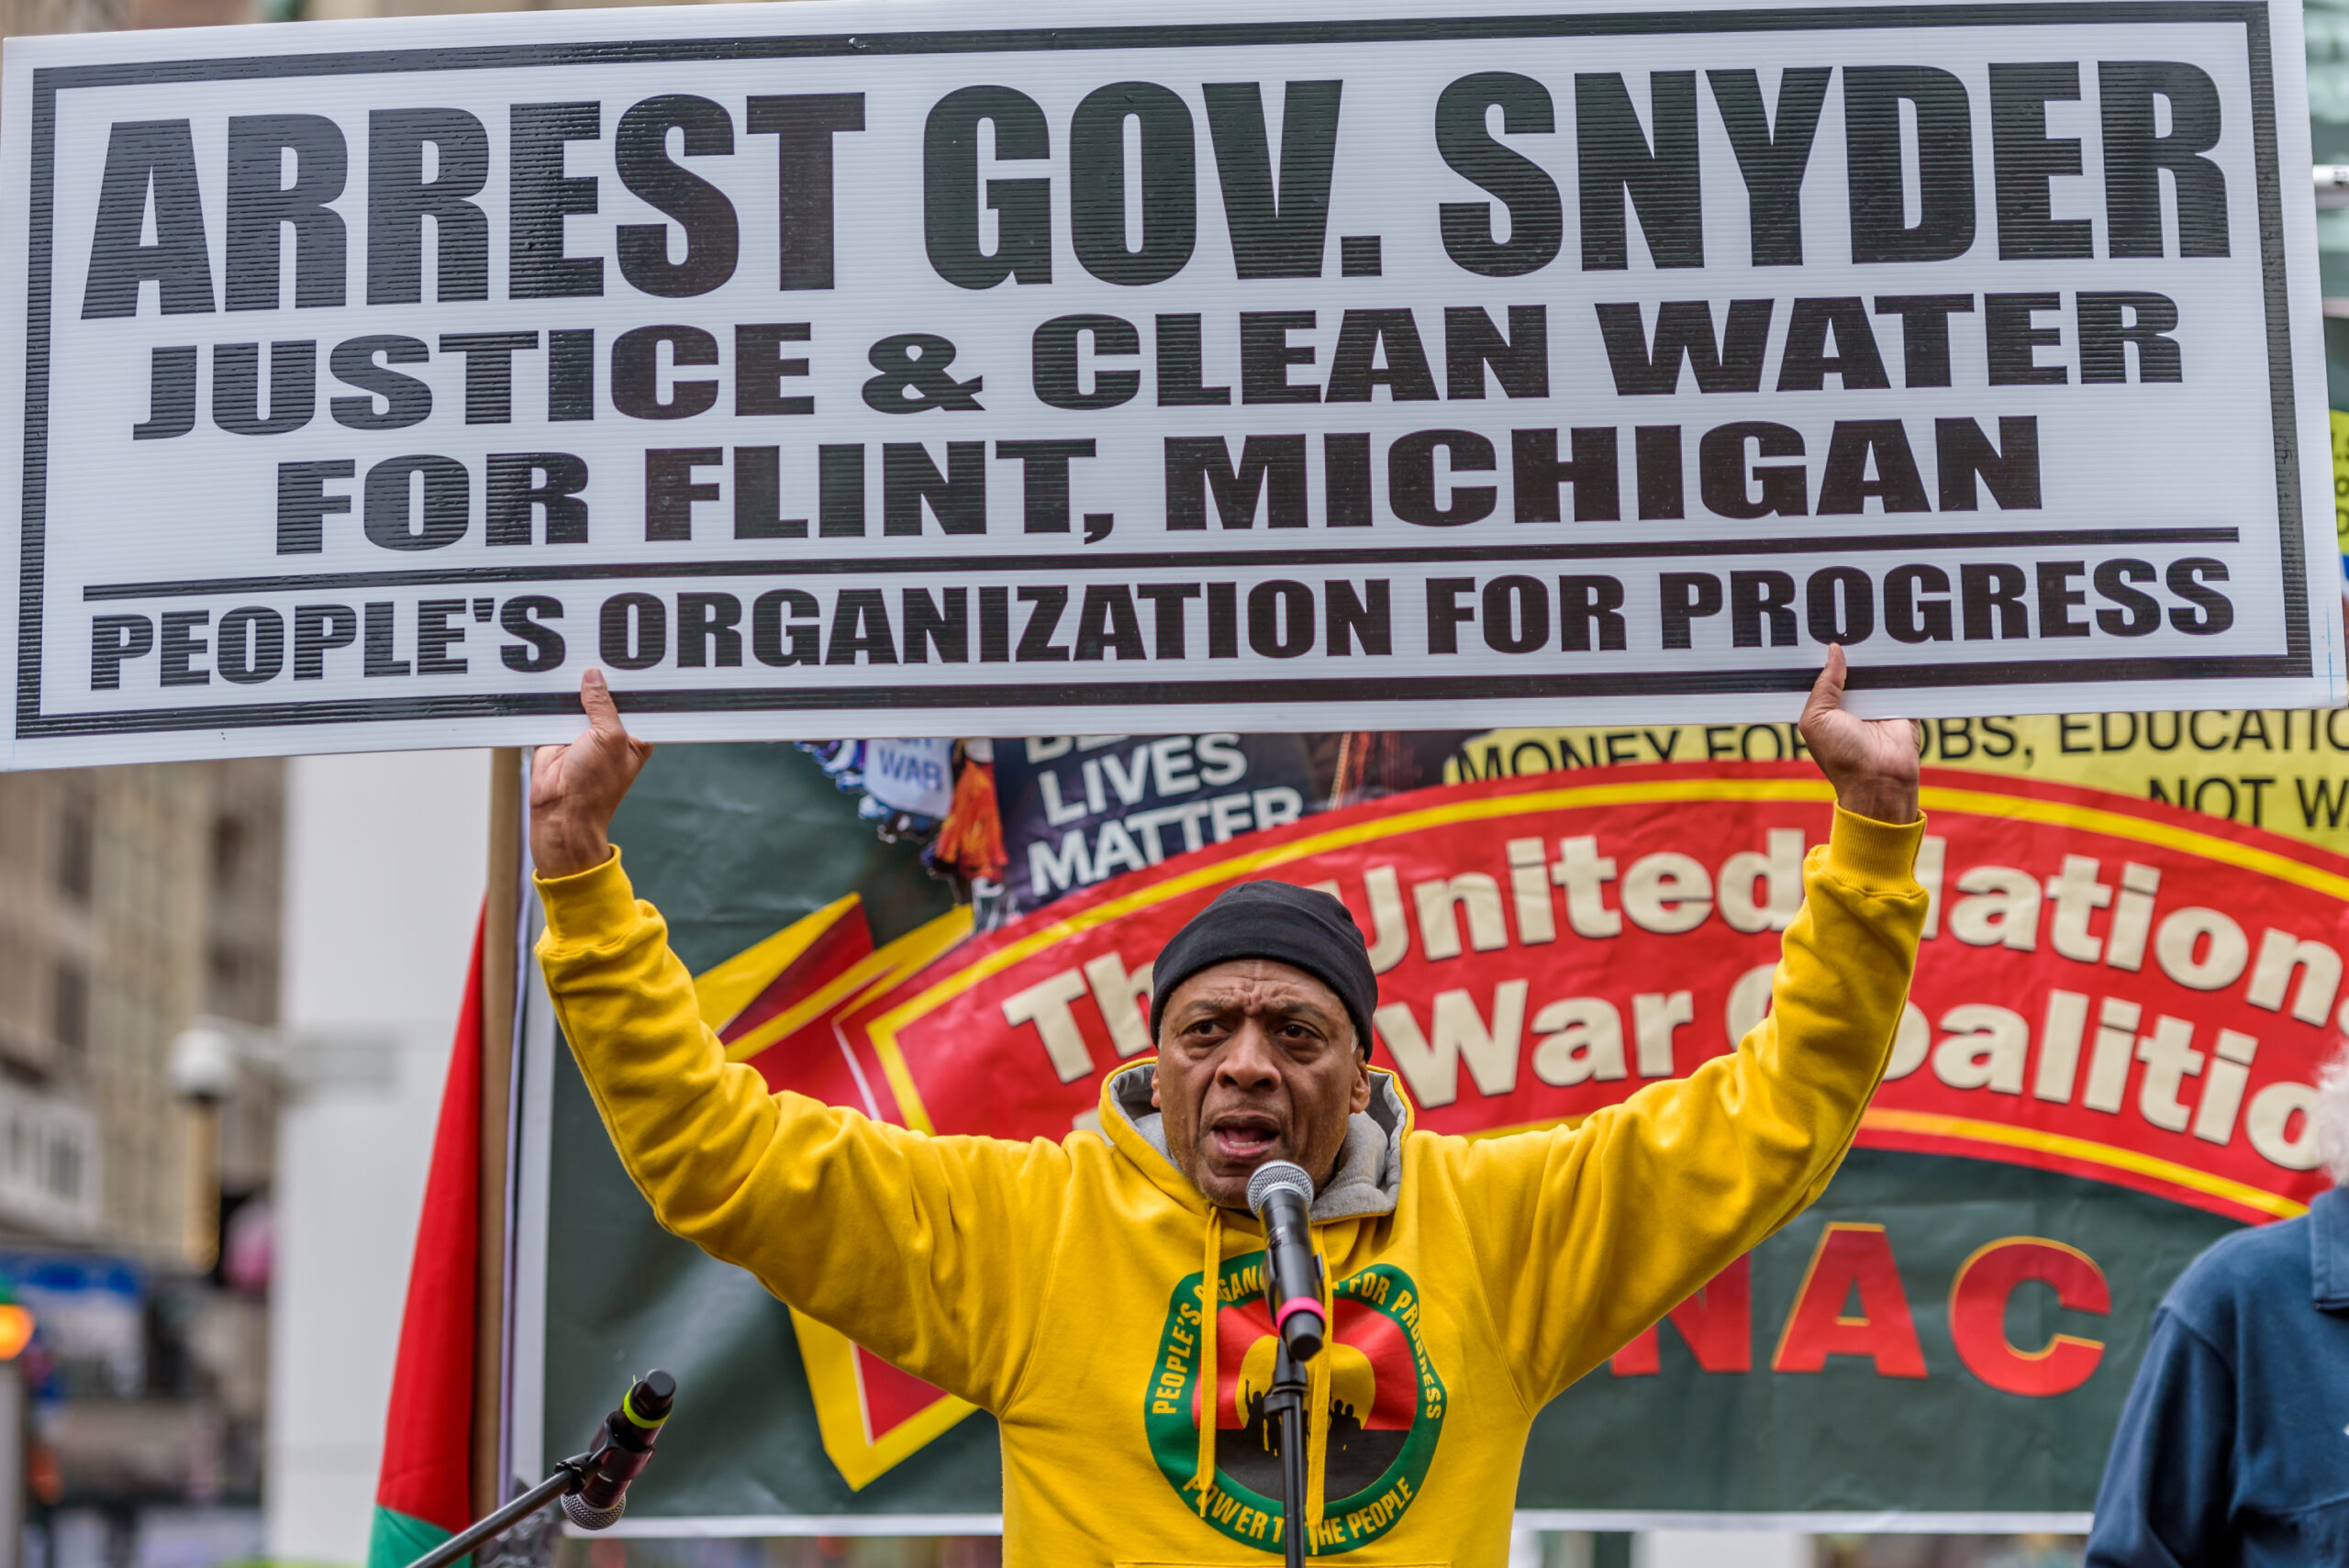 An older black man in a bright yello hoodie with an activist emblem on it holds up a sign saying 'Arrest Gov. Snyder. Justice & Clean Water for Flint, Michigan. People's Organisation for Progress'. He is in front of a banner on which the words 'united' and 'war' can be made out, and a sign saying 'black lives matter'